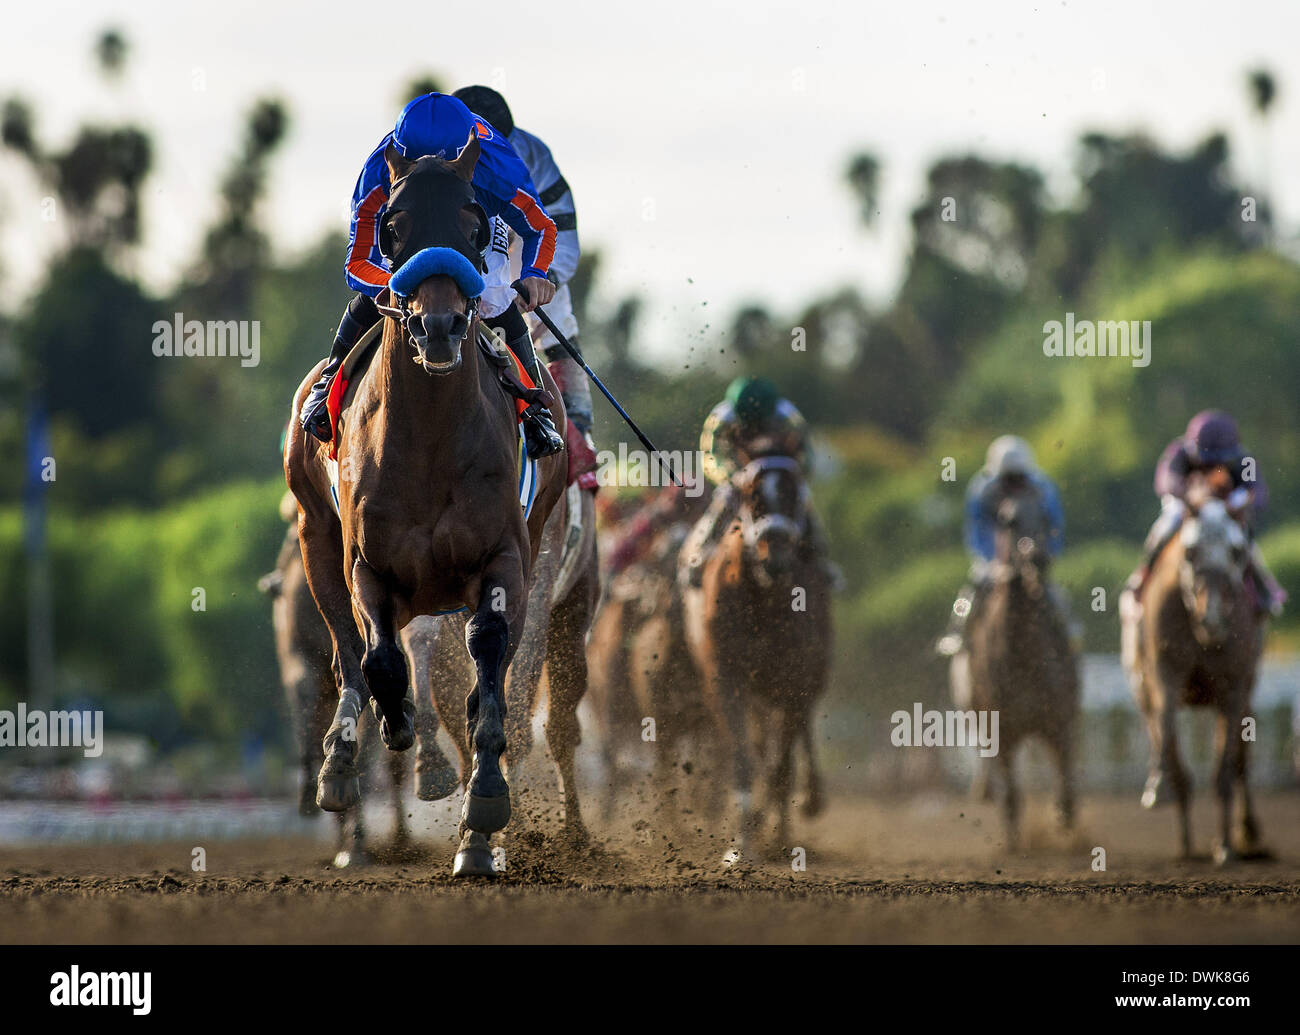 Arcadia, CA, USA. 9th Mar, 2014. Game on Dude, ridden by Mike Smith wins the Santa Anita Handicap (G1) at Santa Anita Park on March 8, 2014 in Arcadia, California © Alex Evers/Eclipse Sportswire/Eclipse/ZUMAPRESS.com/Alamy Live News - Stock Image